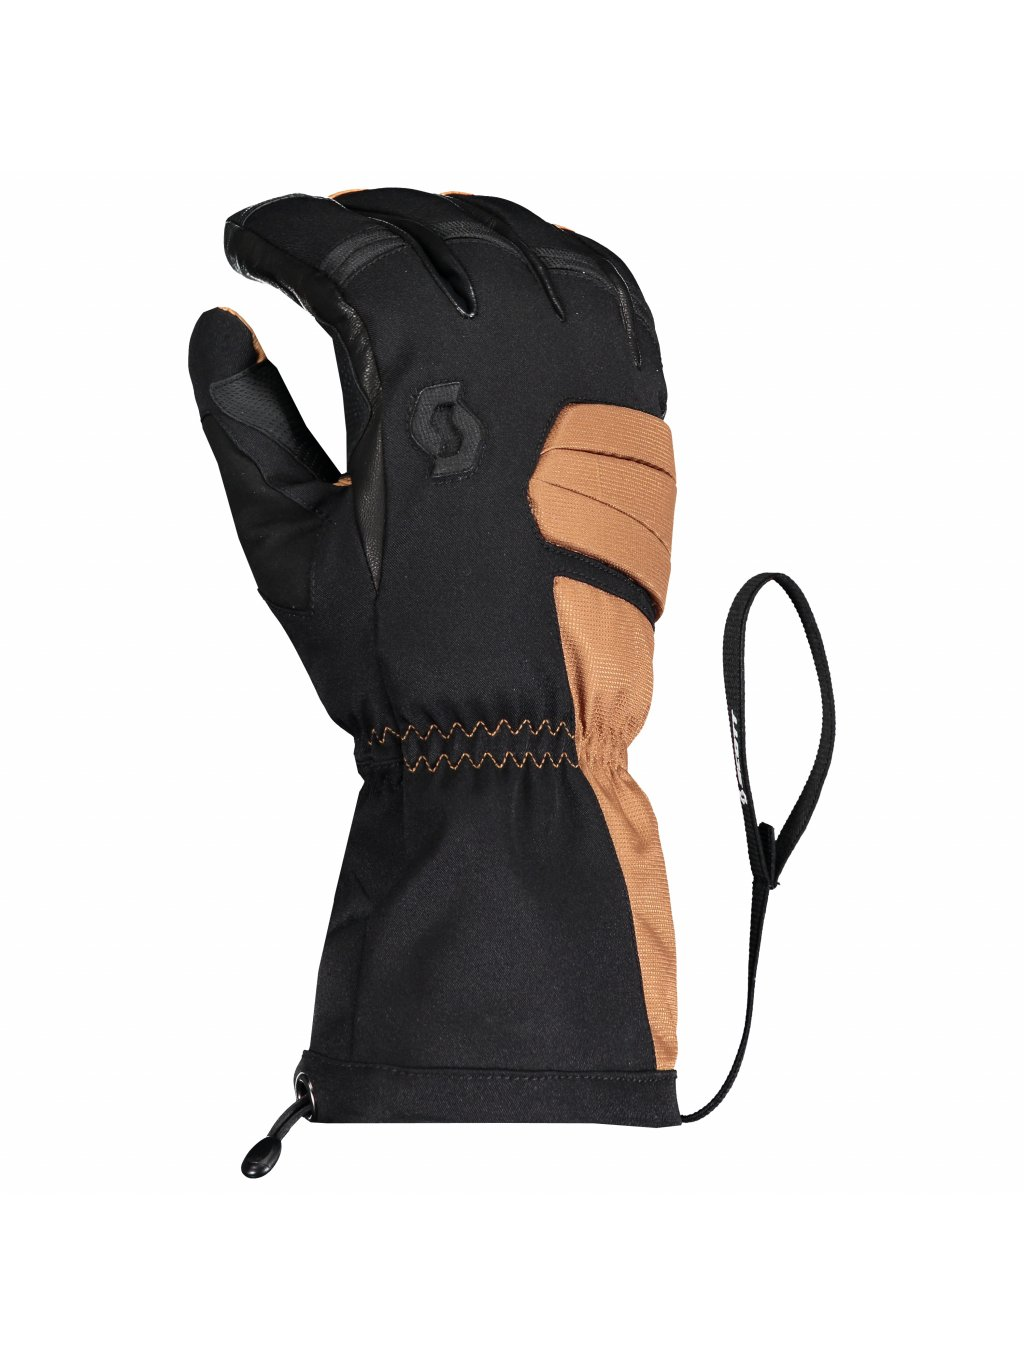 SCOTT Glove Ultimate Premium GTX, casual brown